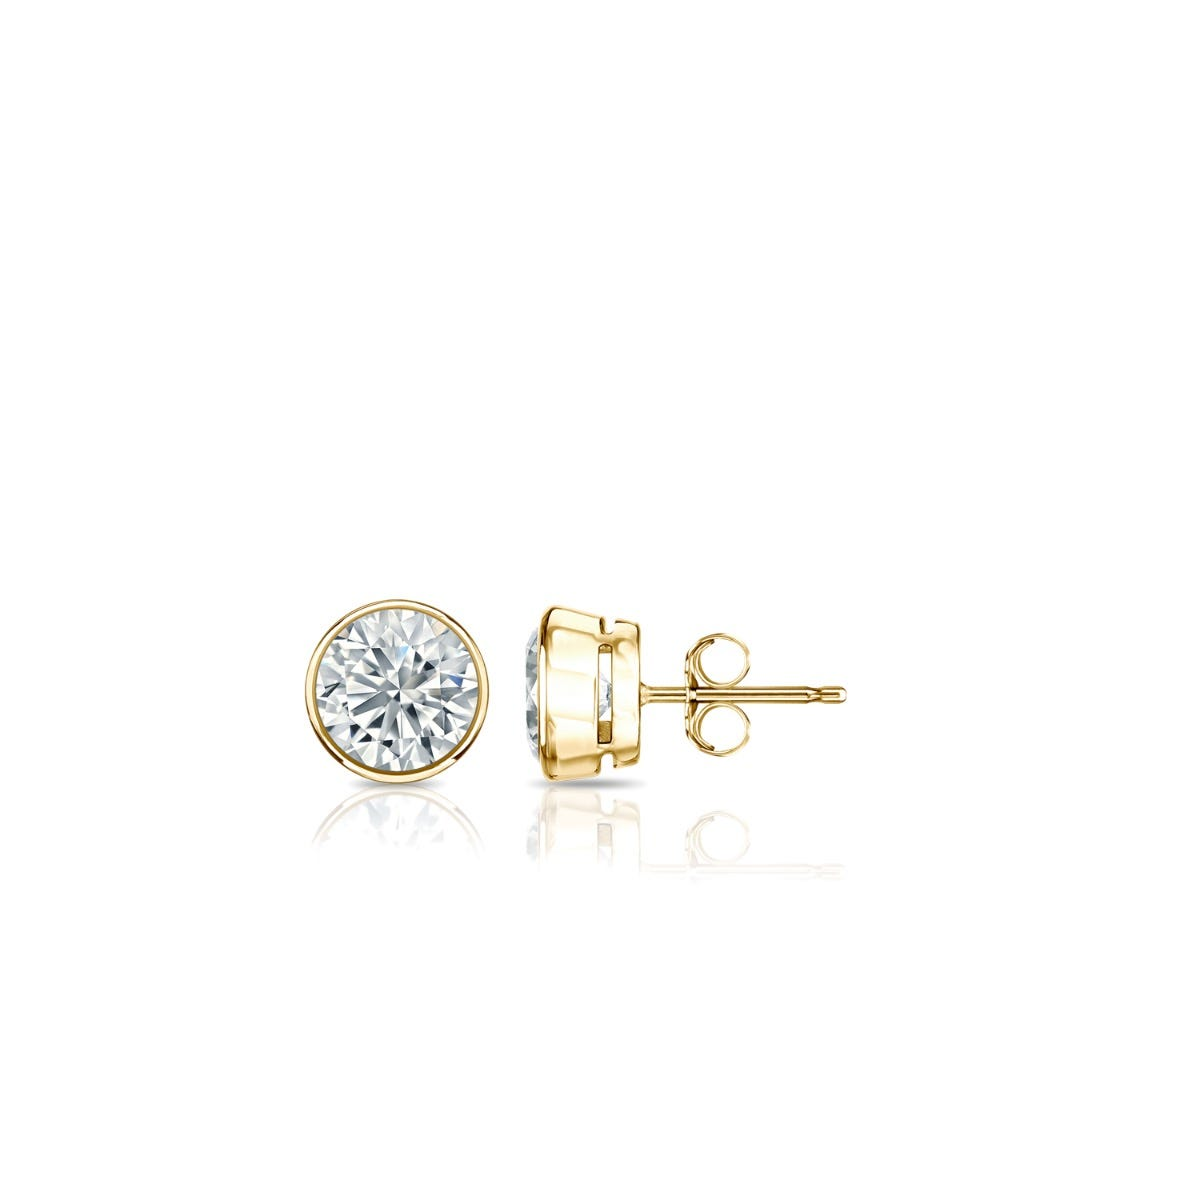 Diamond Round Bezel-Set 1/10ctw. Solitaire Stud (IJ-SI1) Earrings in 14K Yellow Gold